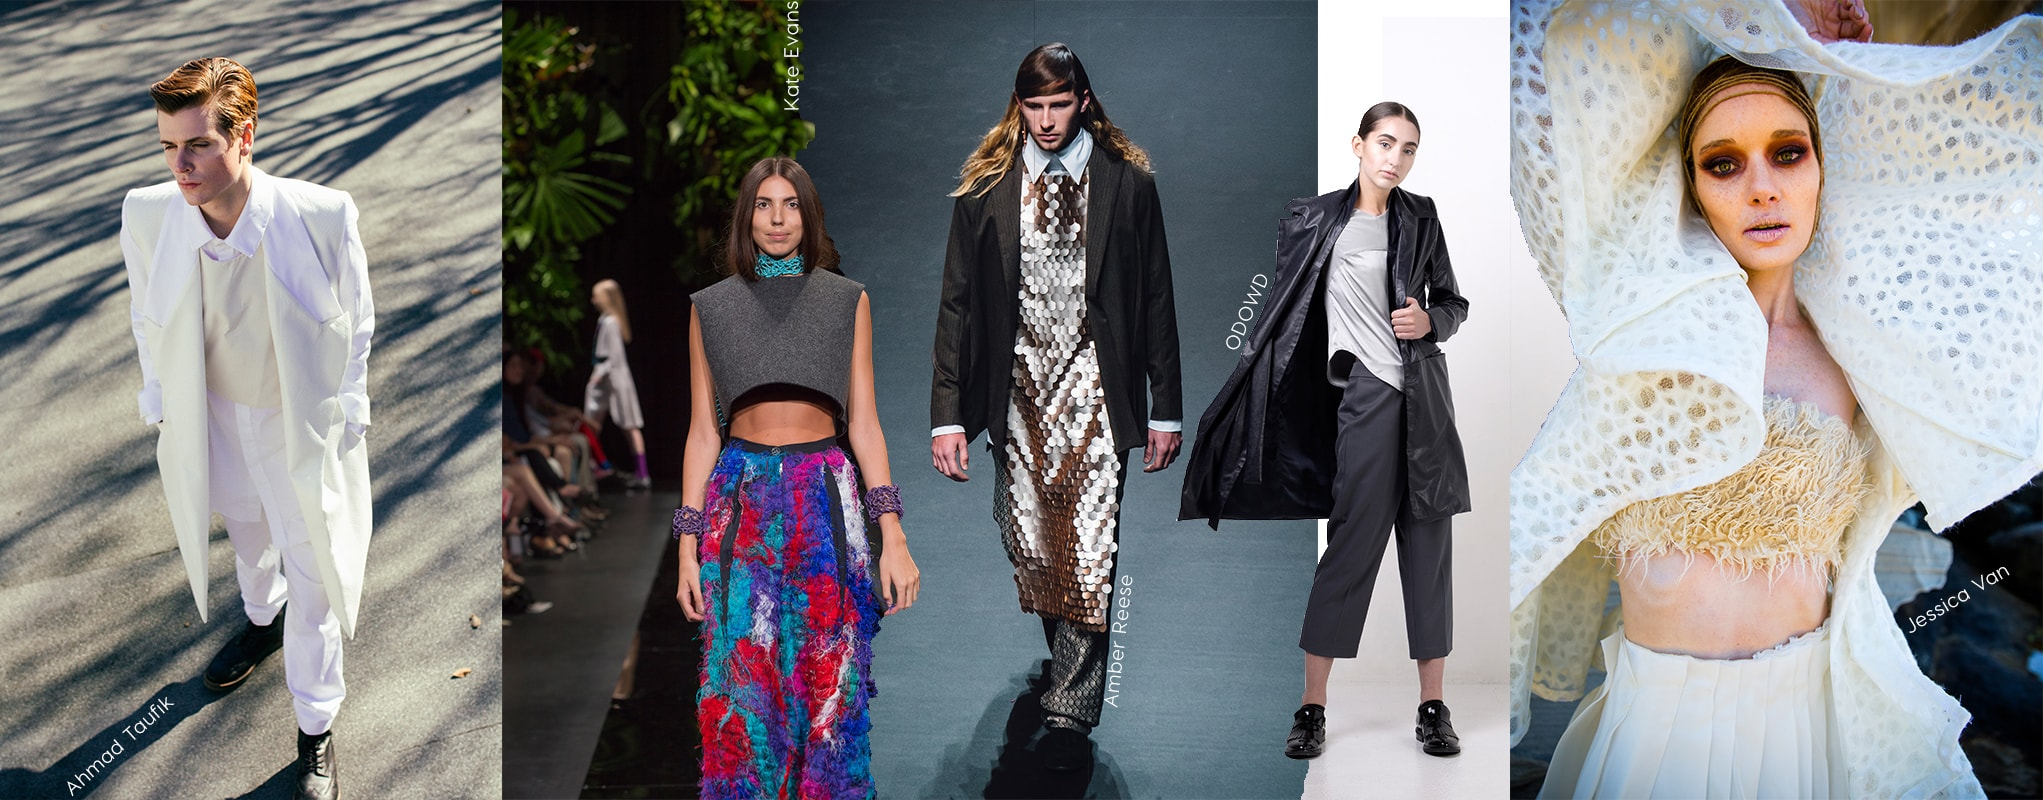 Top 5 Faces to Watch as selected by Emma Freebairn, Sunday Style